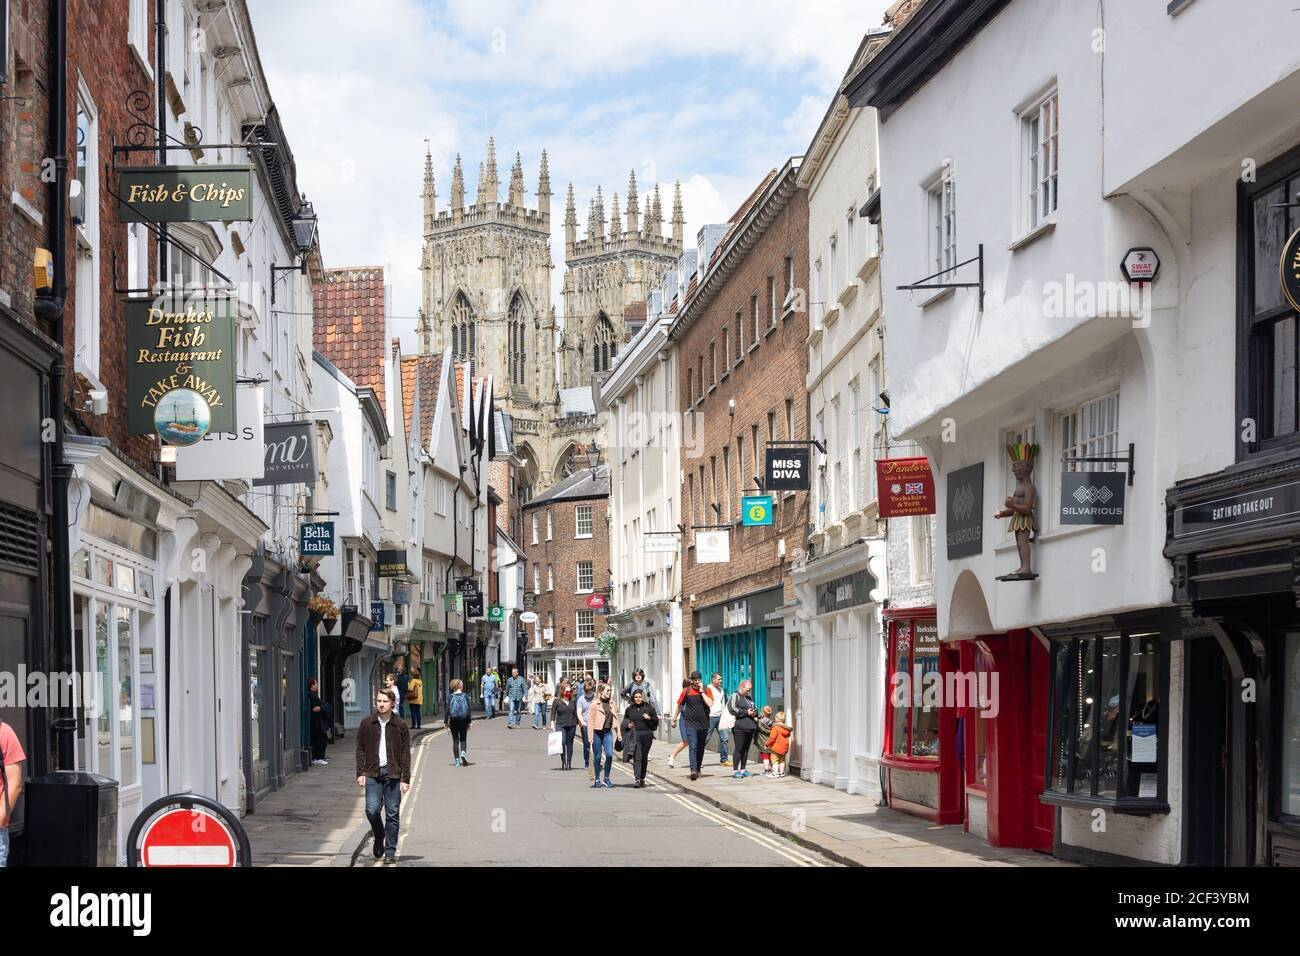 York Minster Towers de Low Petergate, York, North Yorkshire, Angleterre, Royaume-Uni Banque D'Images